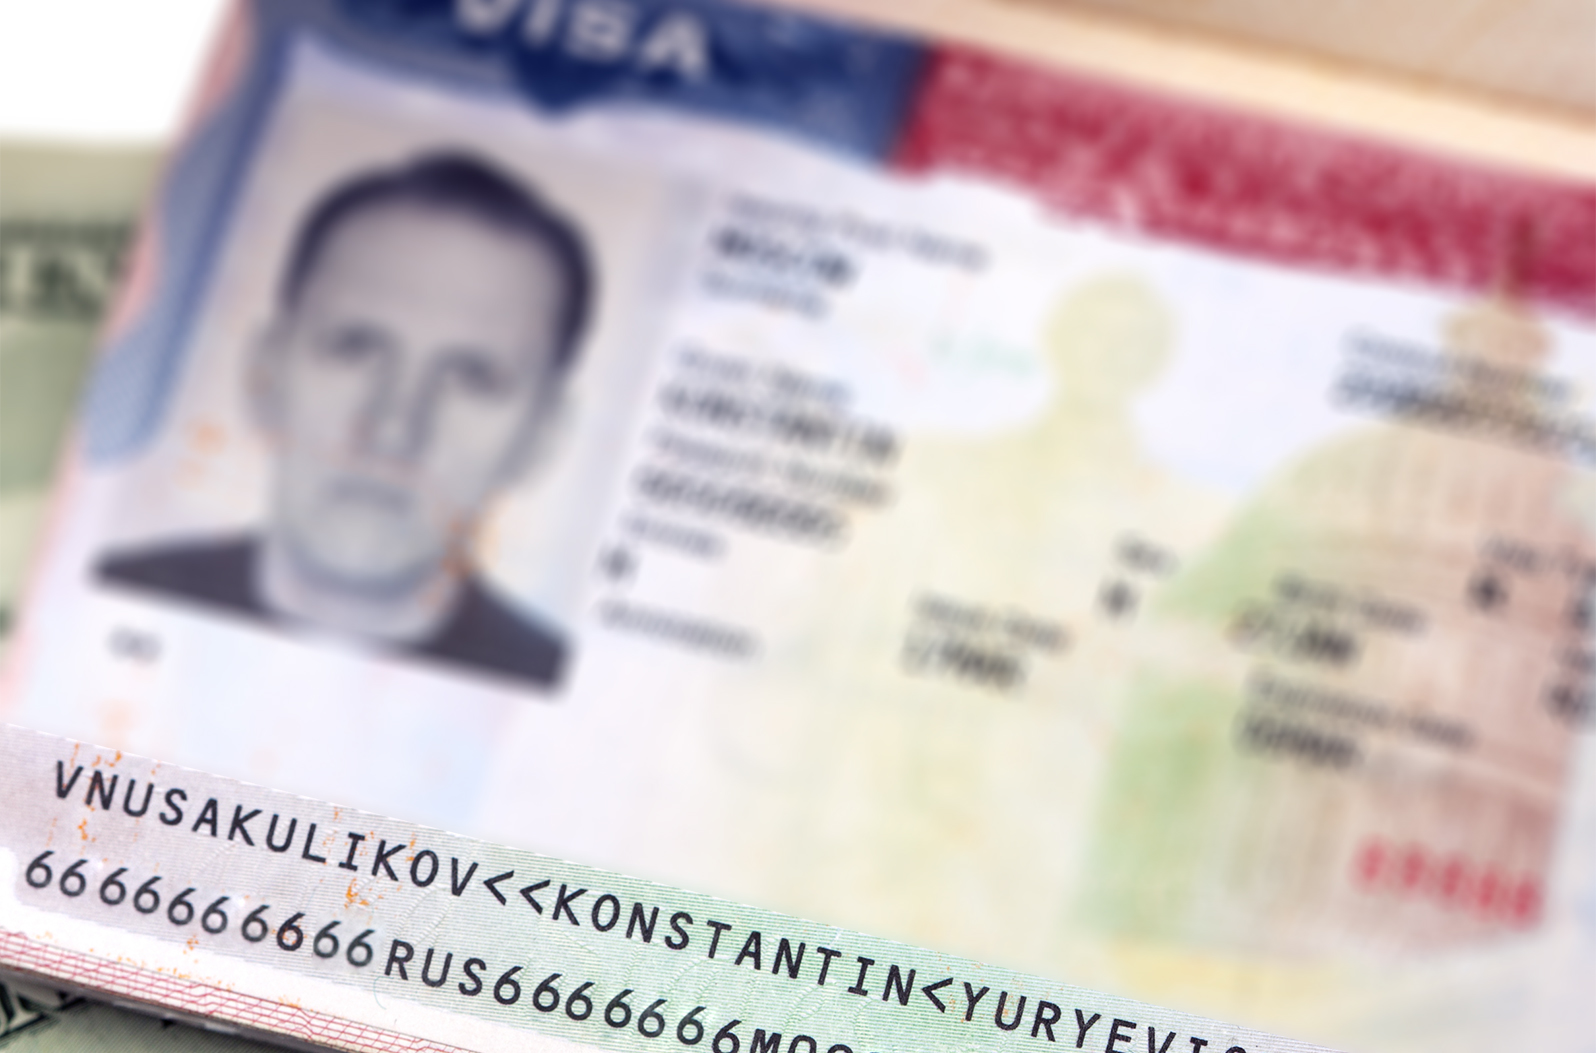 Capture the data from passports and ID cards